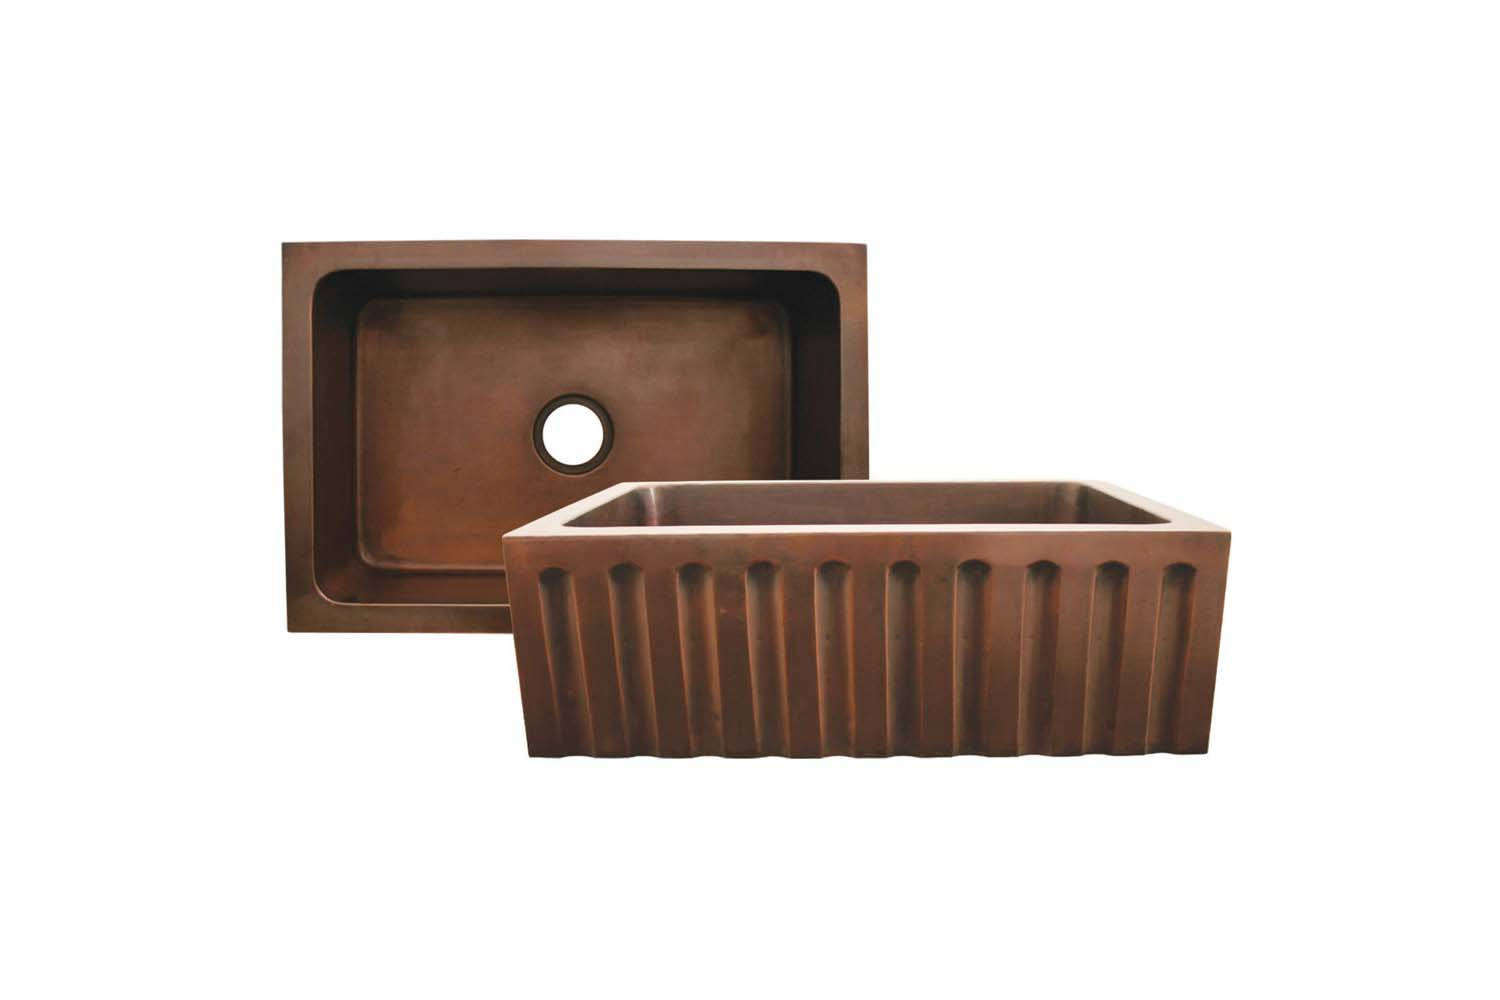 The Whitehaus Copperhaus Copper Farmhouse Sink with Fluted Design is $